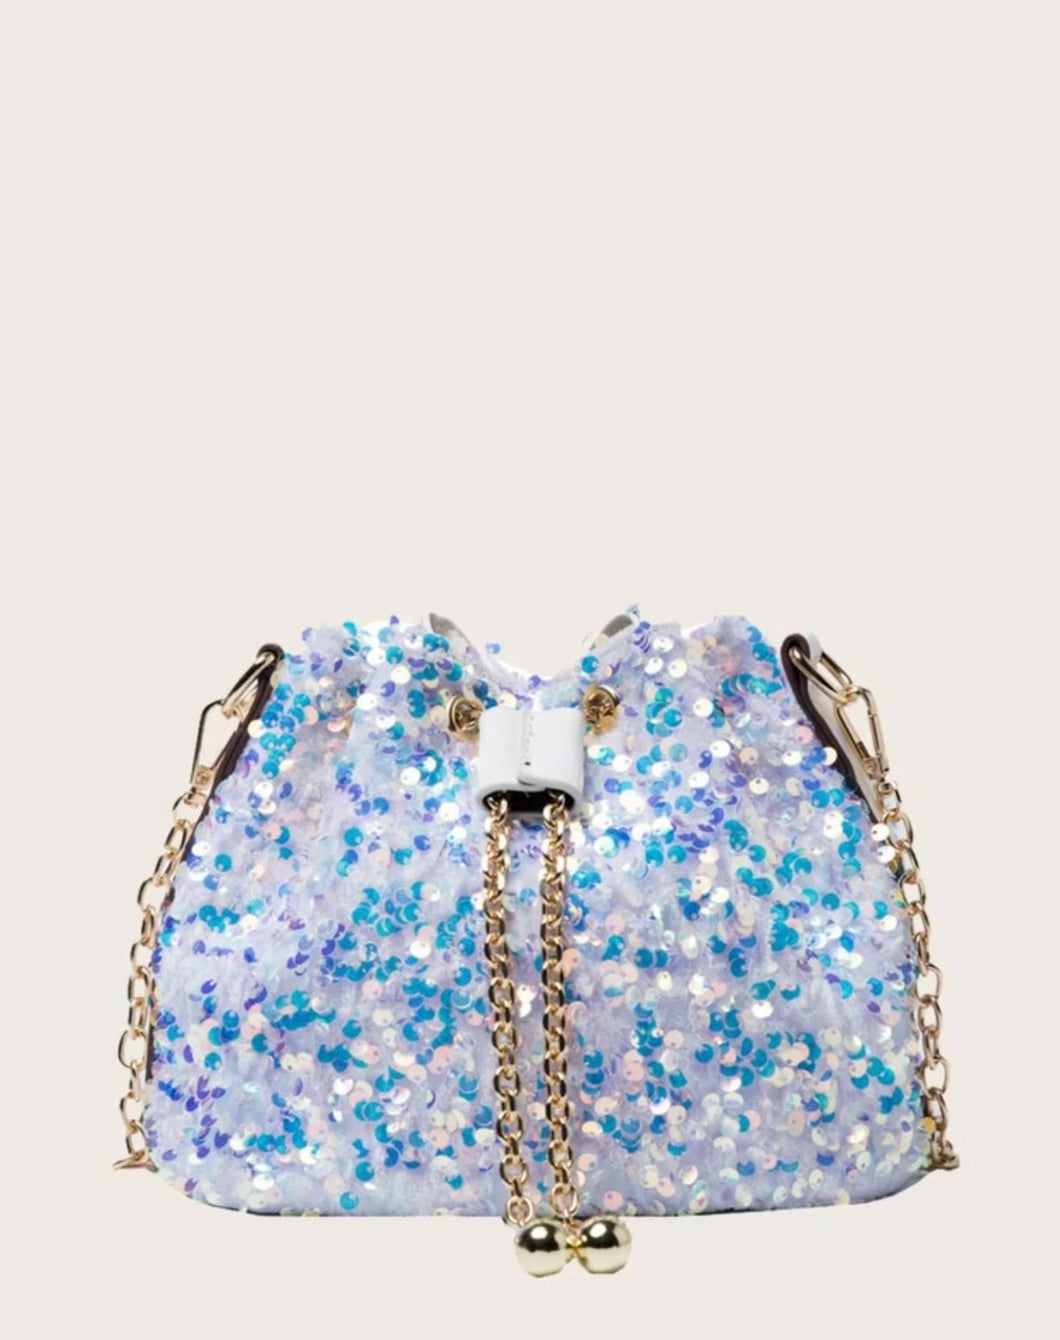 Party Girl Sequin Bag